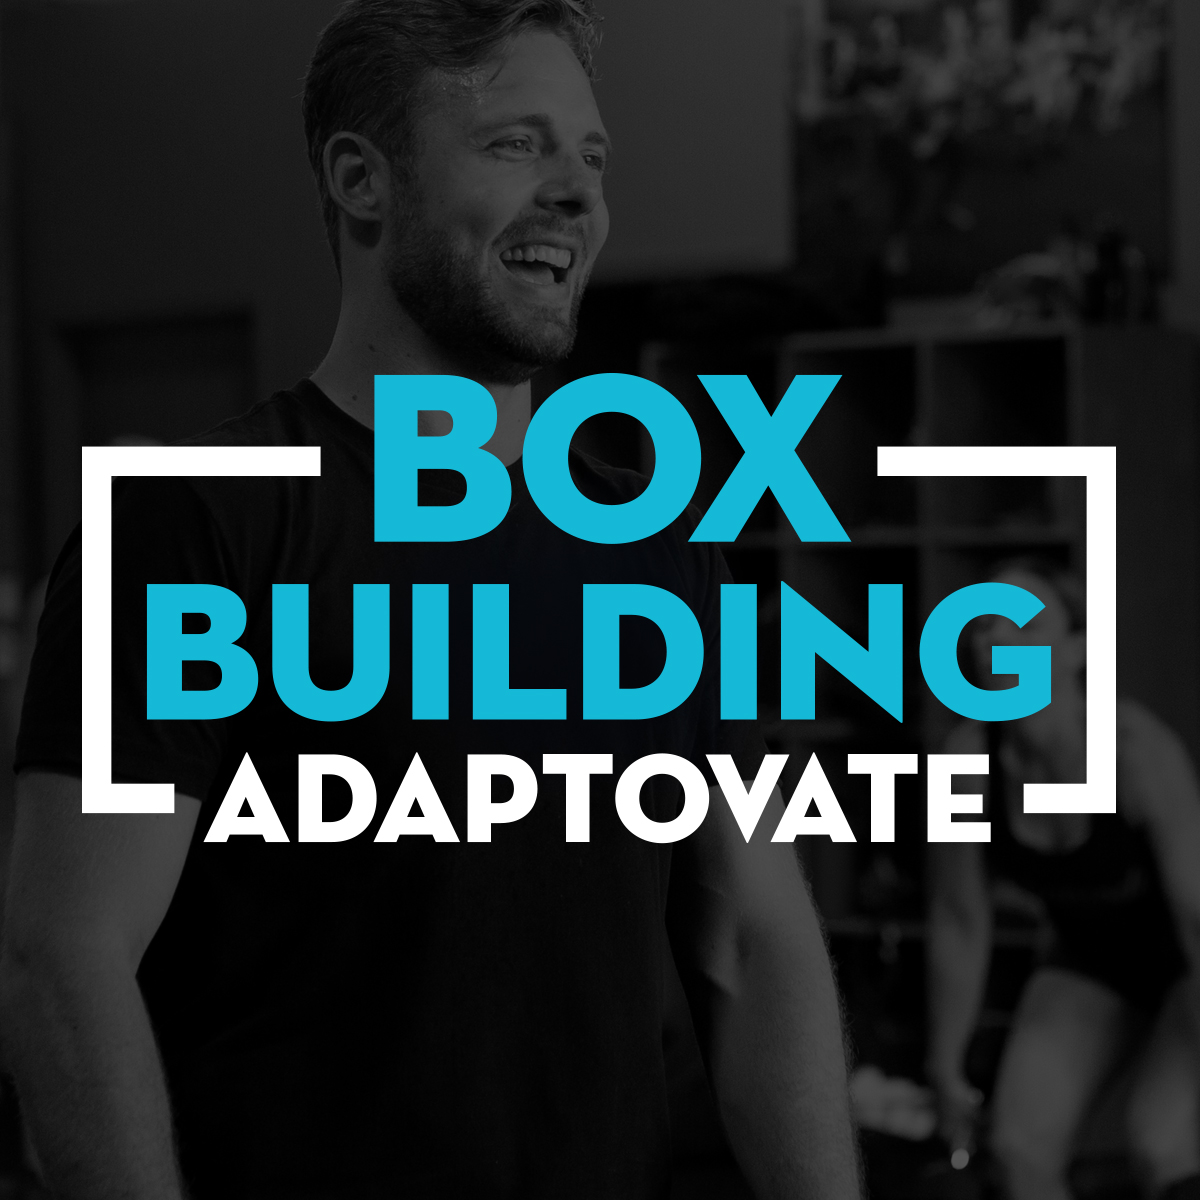 Adaptovate – Innovate So You Can Adapt